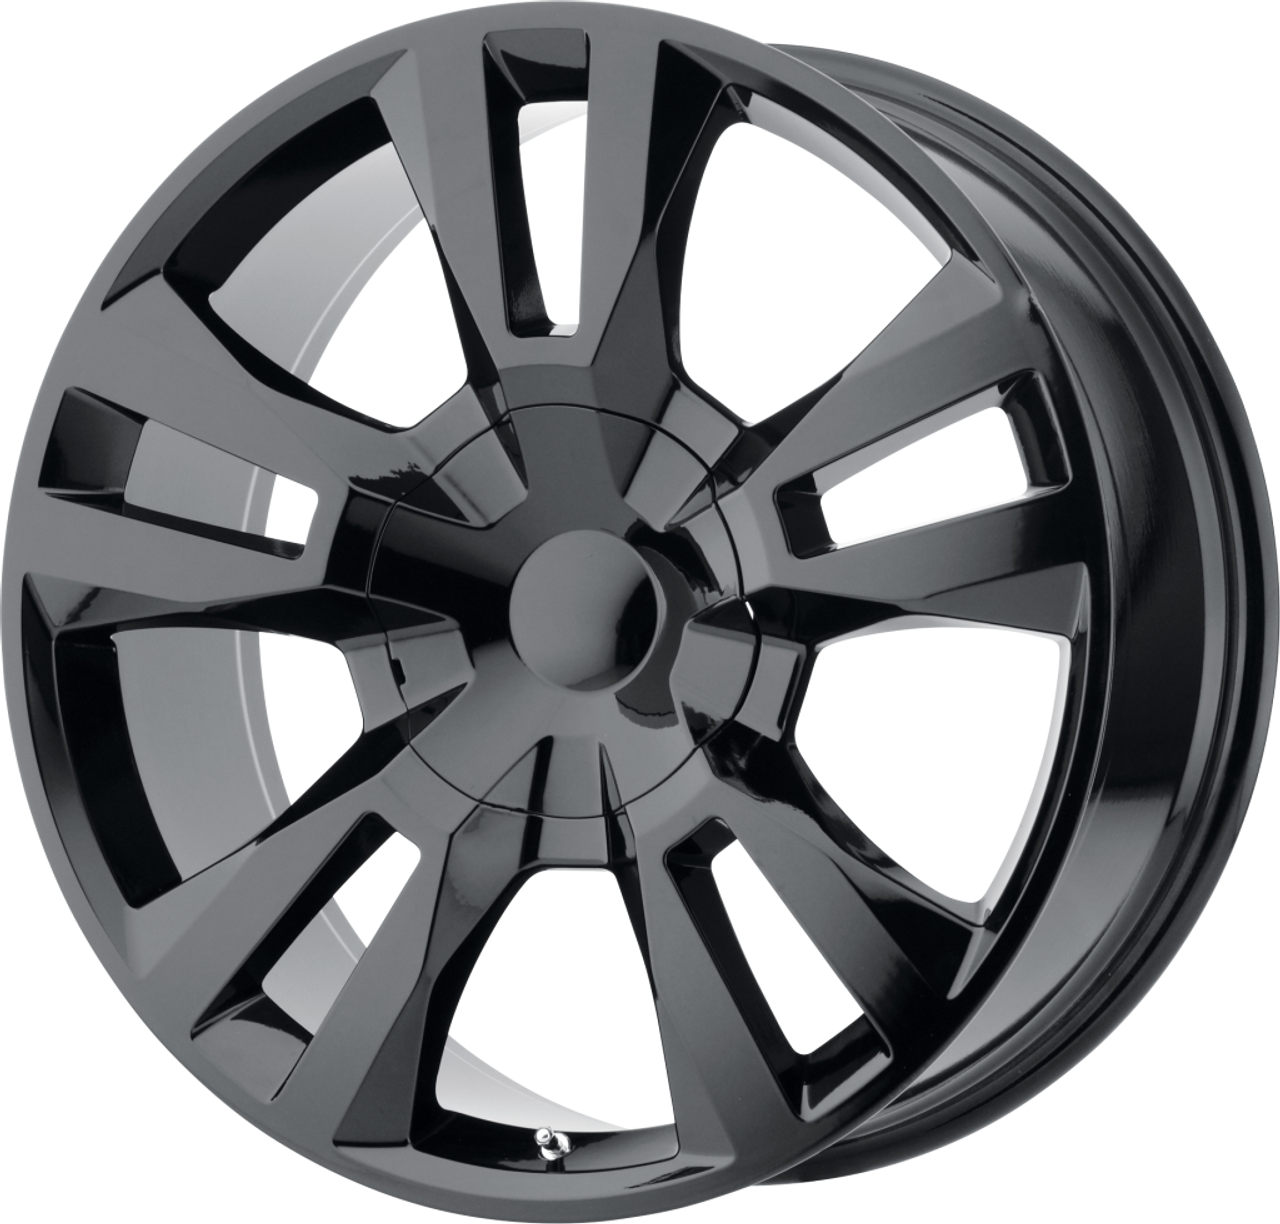 """Gloss Black 24"""" RST Style Split Spoke Wheels for GMC and Chevy 1500 Trucks and SUVs"""